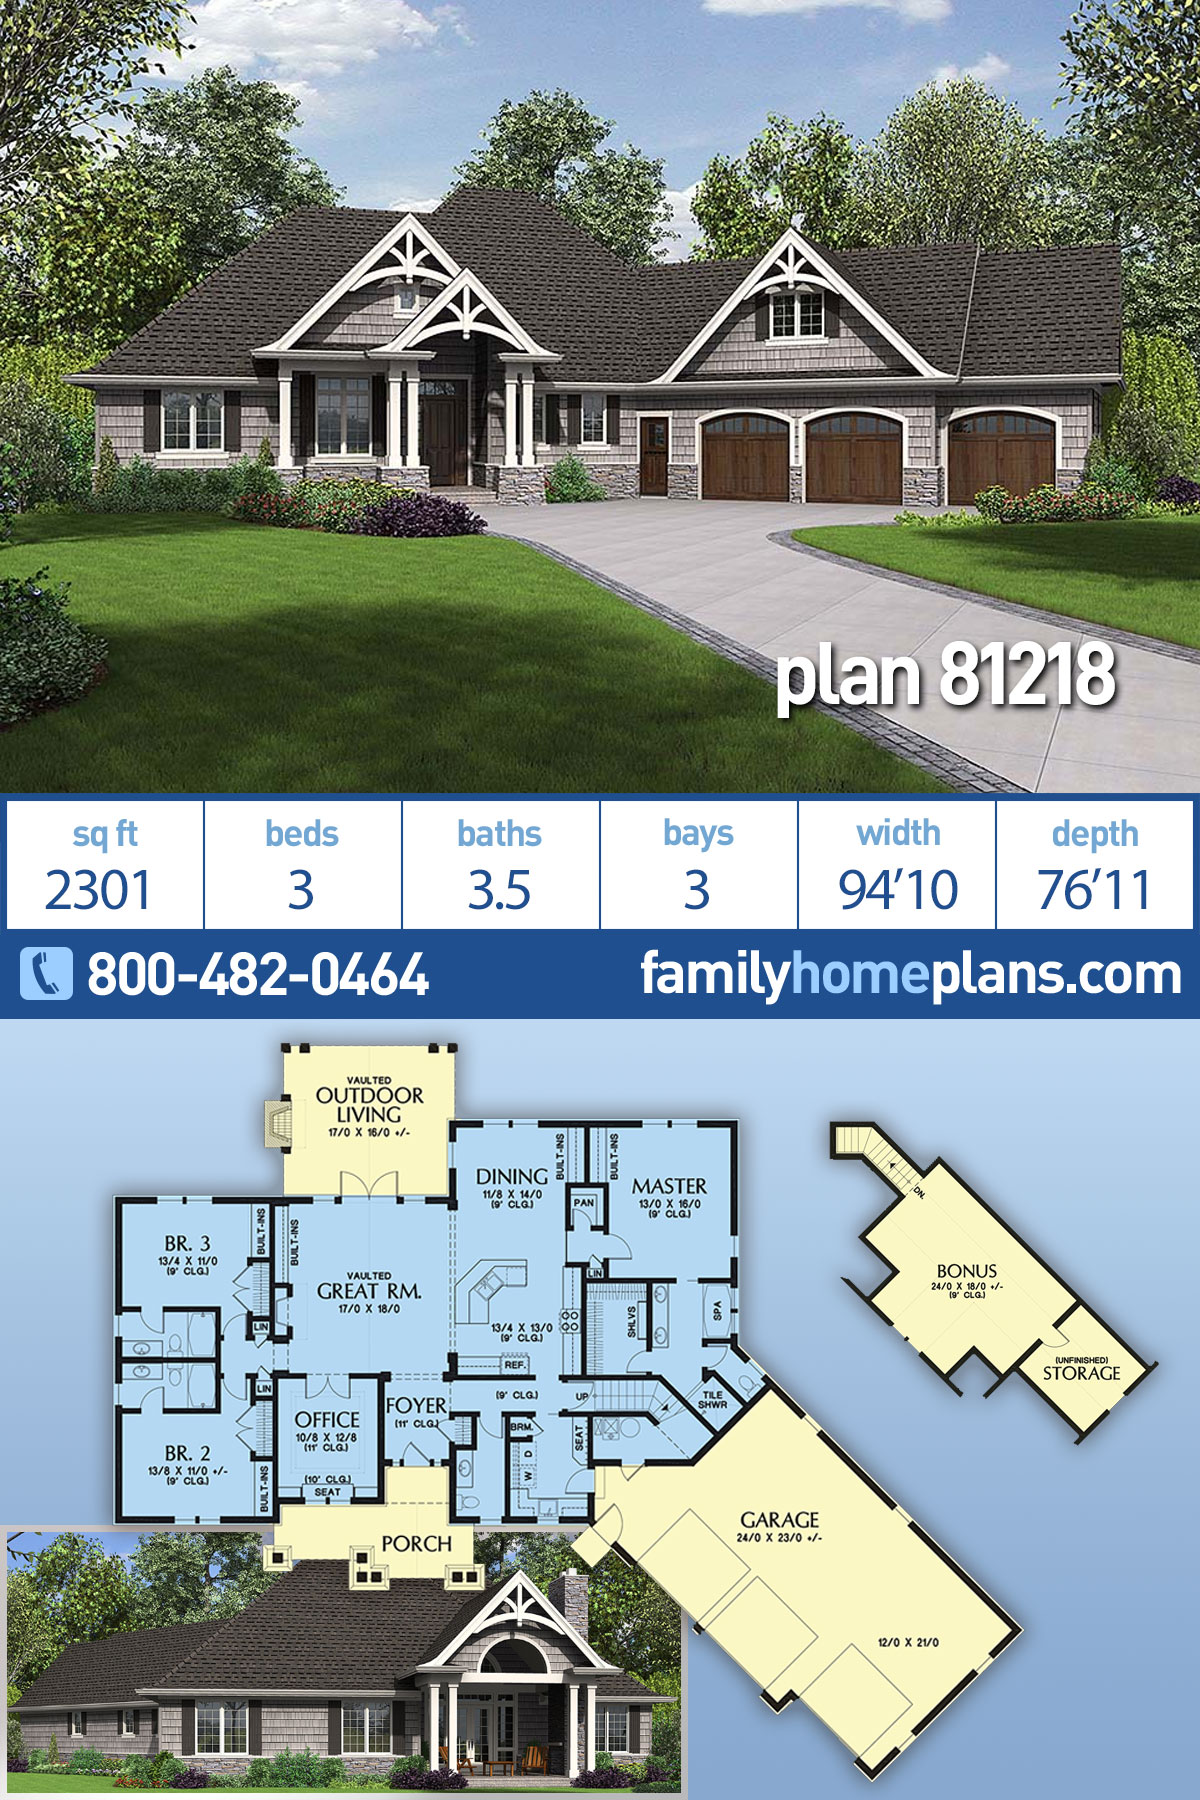 Craftsman House Plan 81218 with 3 Beds, 4 Baths, 3 Car Garage